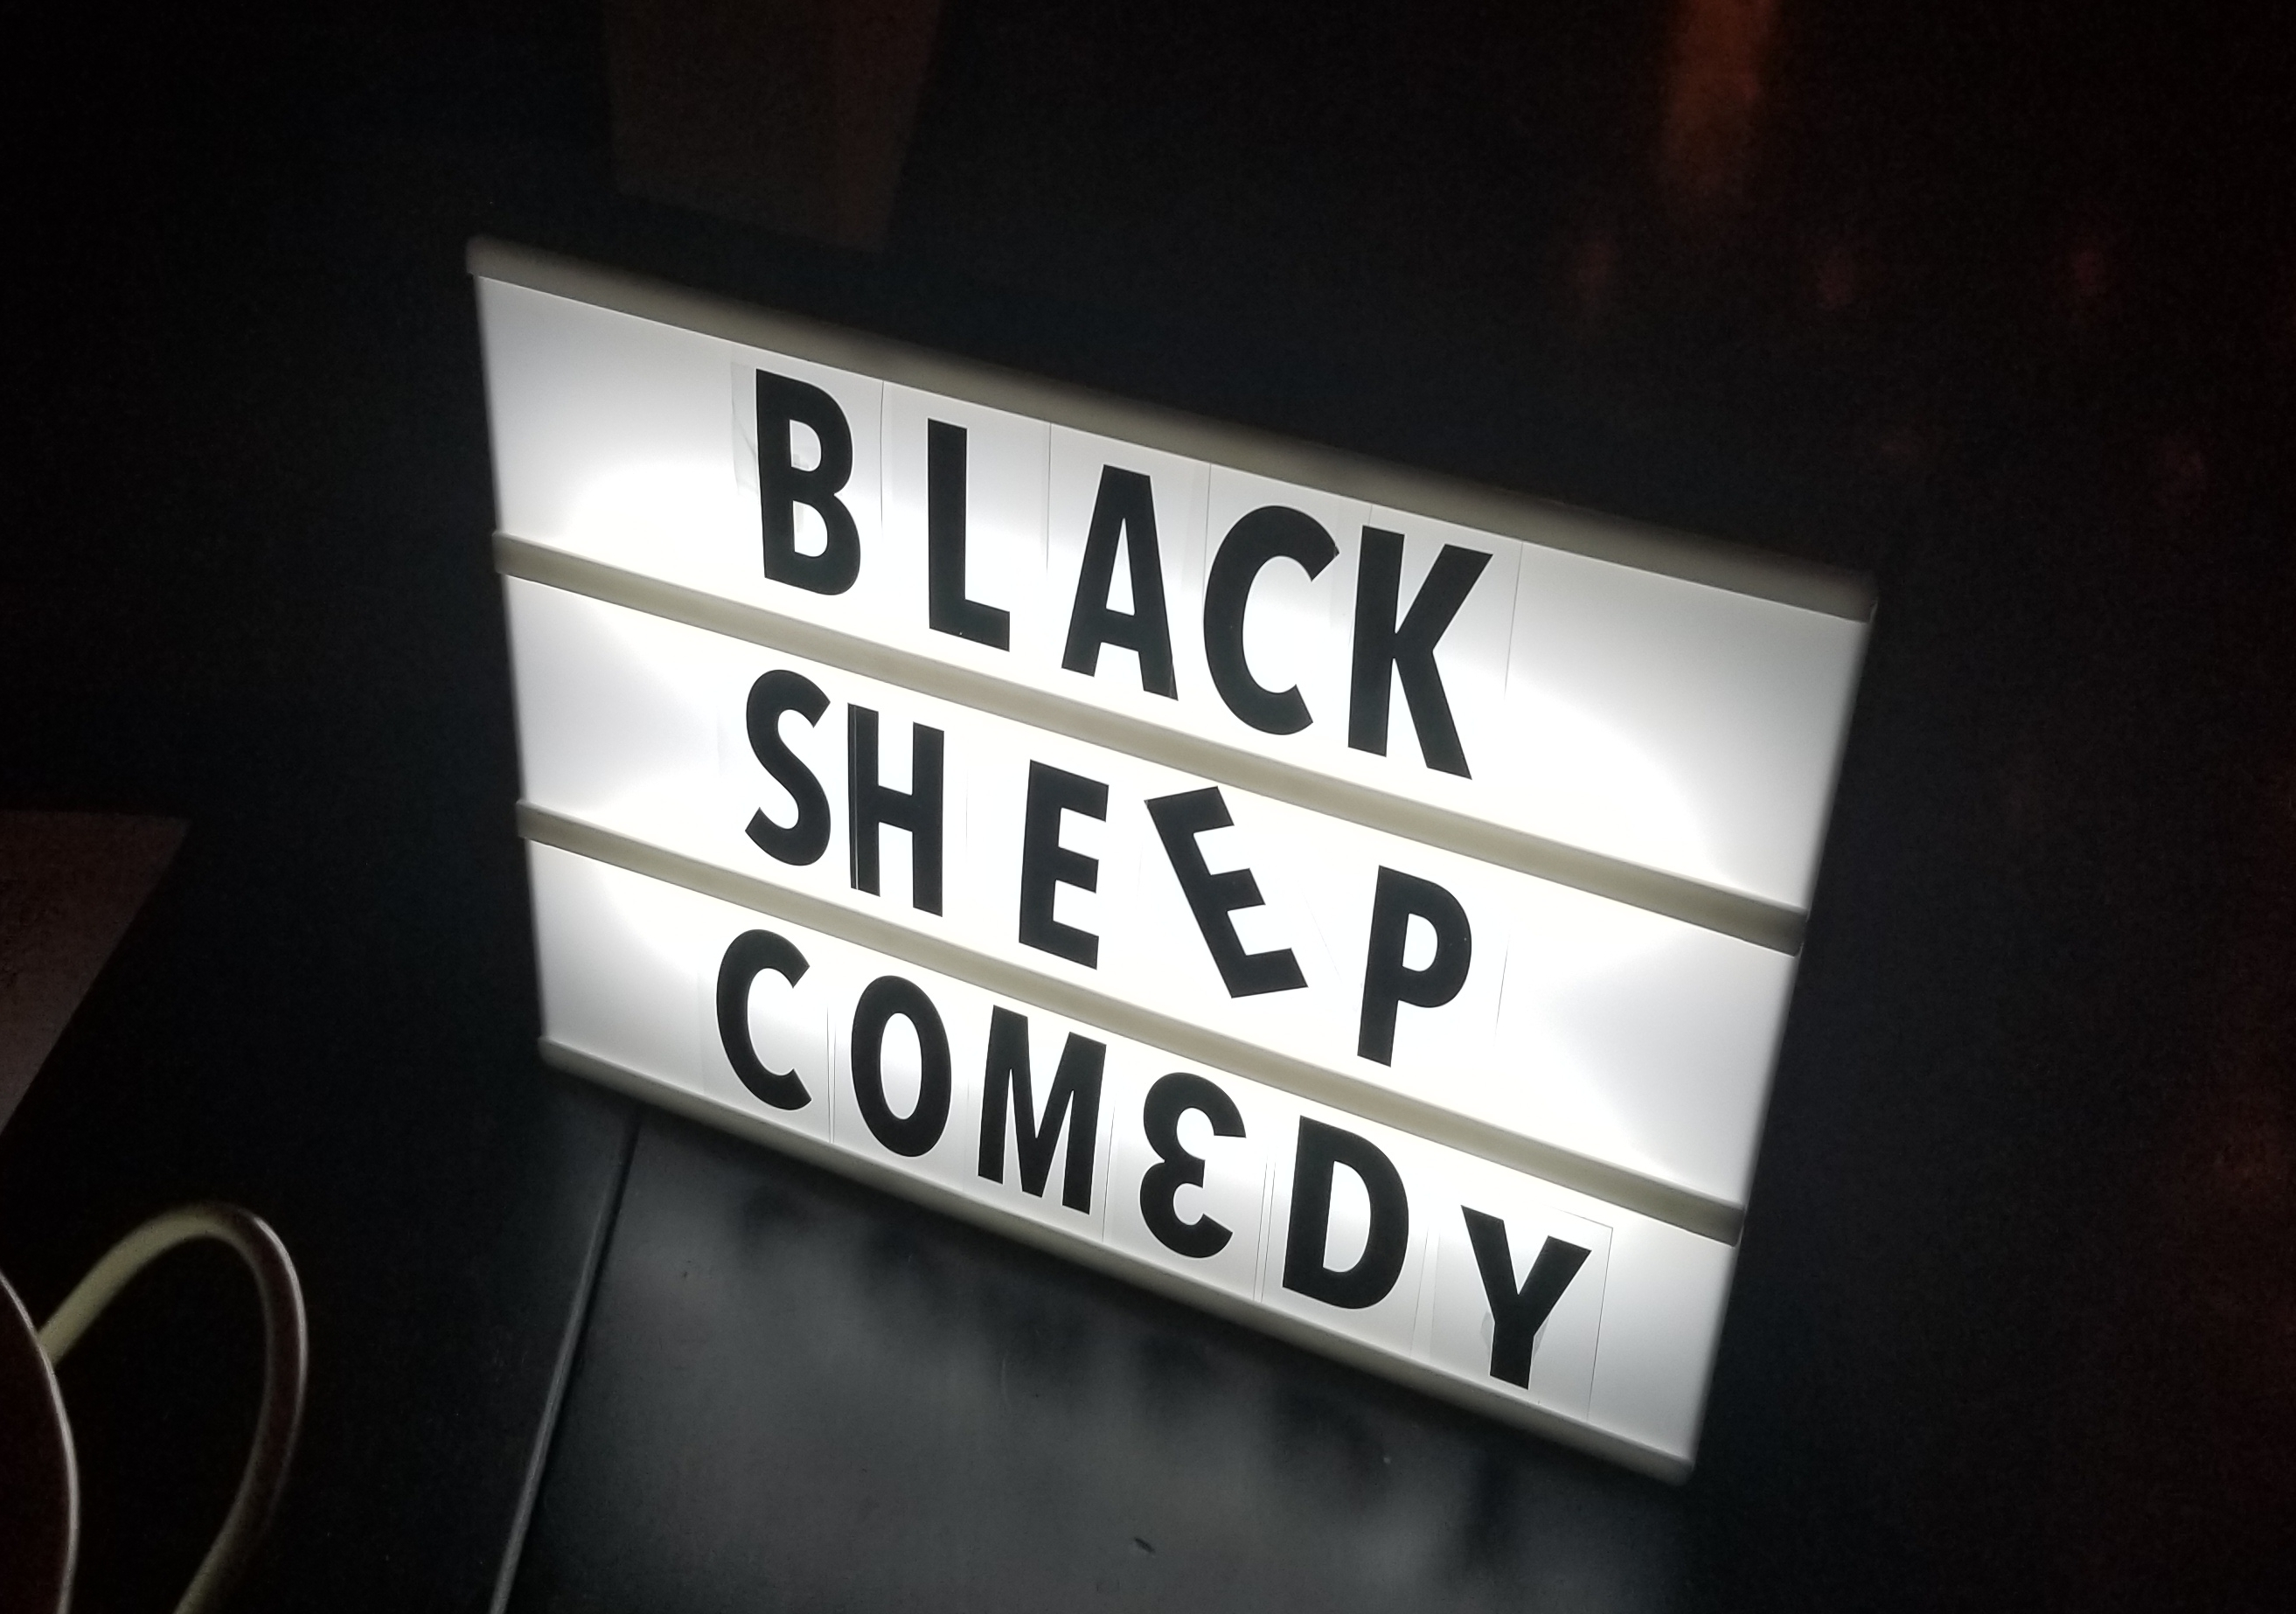 Black Sheep Comedy is Lit